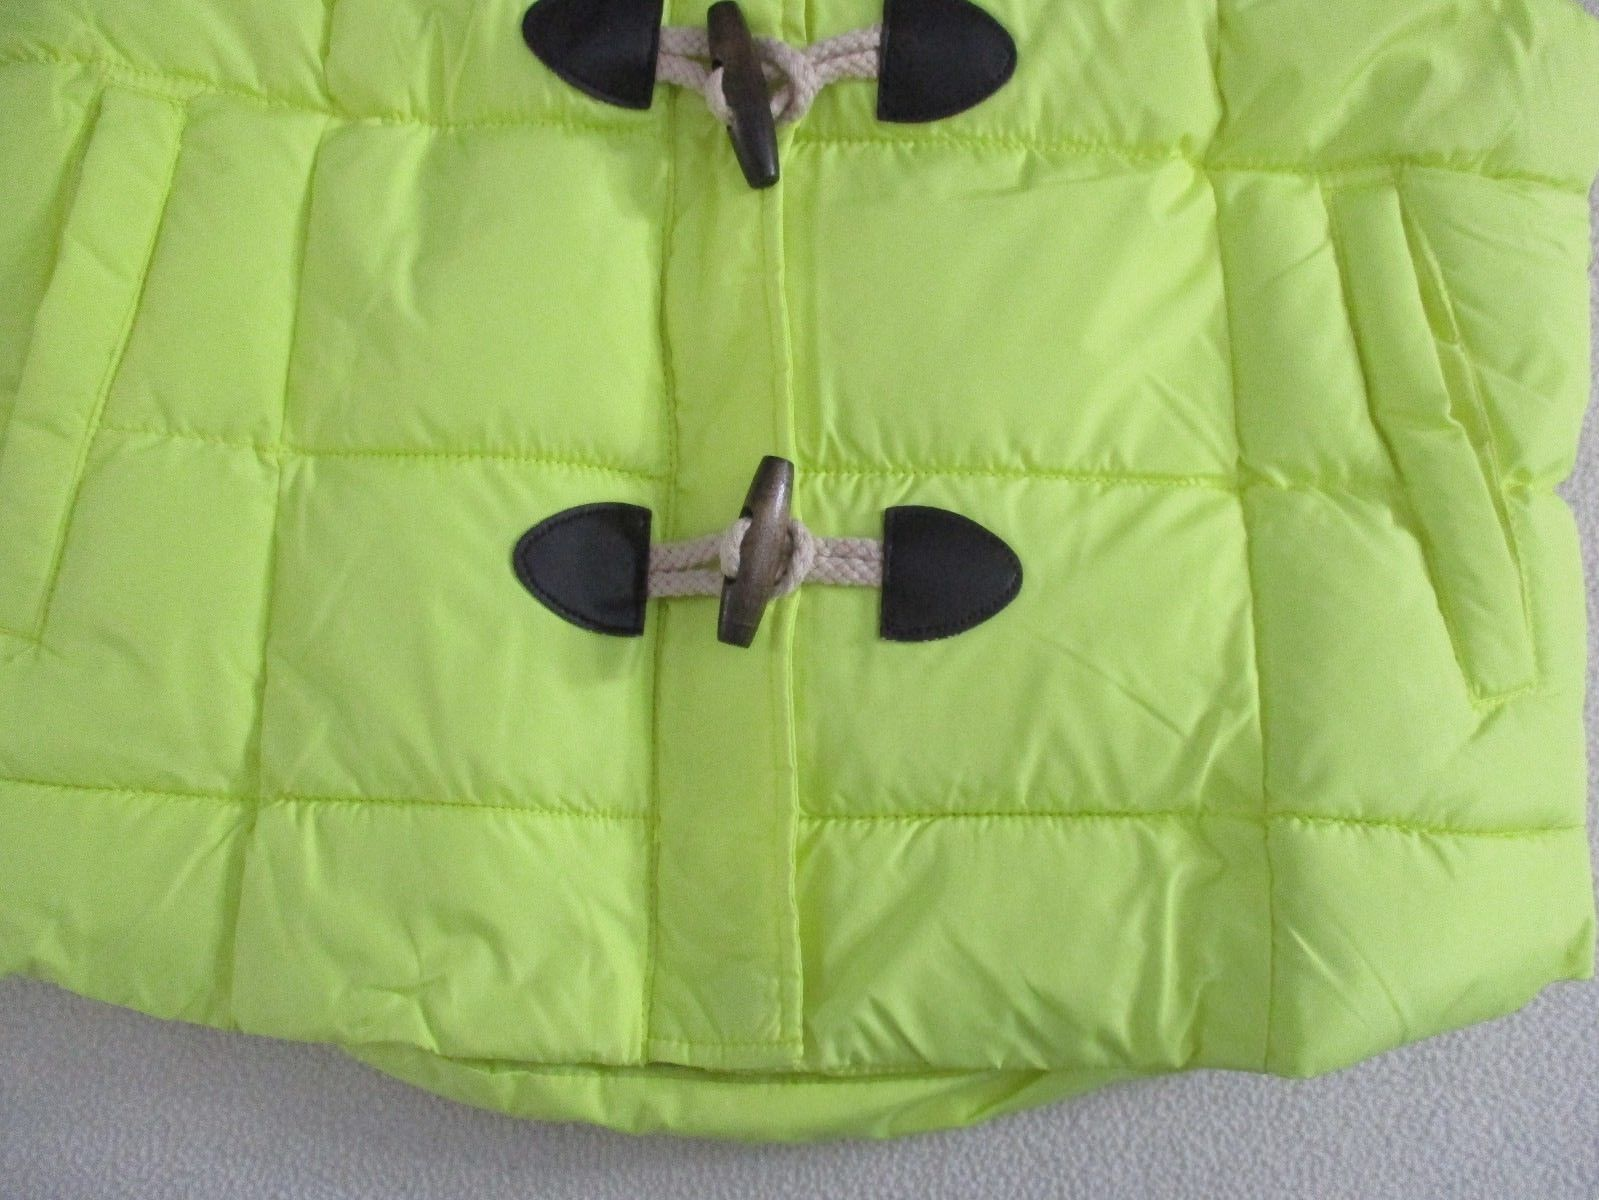 Arizona Jeans Juniors  Vest L Yellow Solid Sleeveless Puffed Wood Buttons  1800K